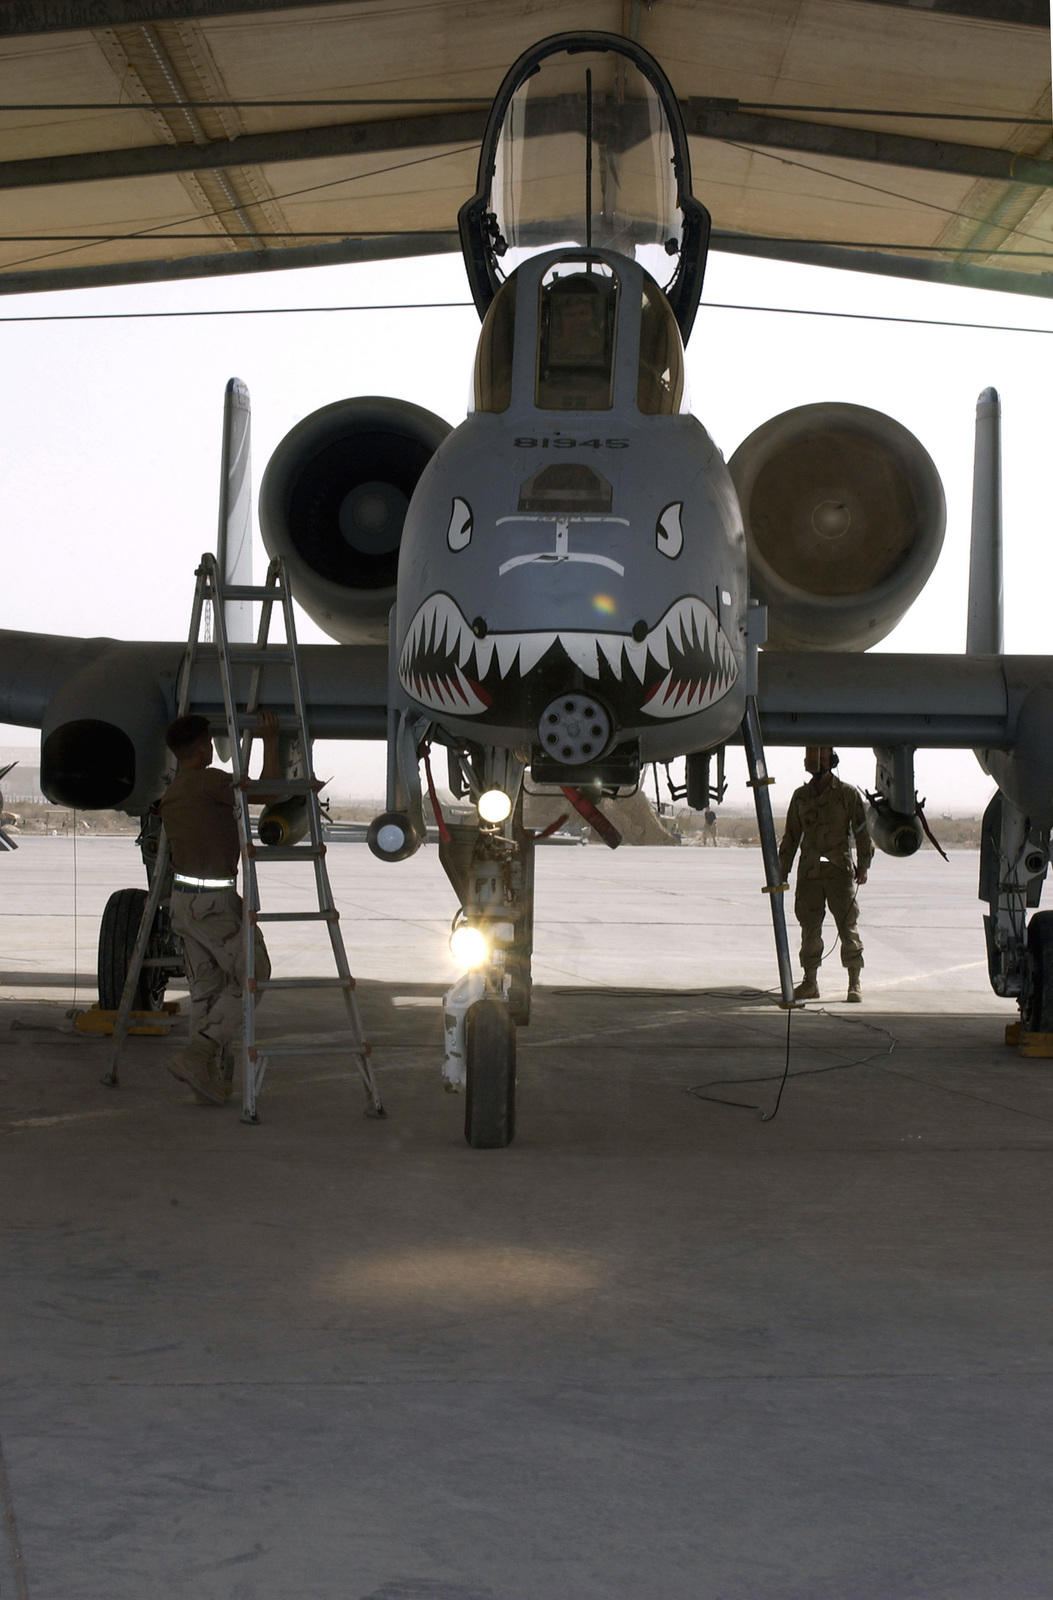 US Air Force (USAF) SENIOR AIRMAN (SRA) Rusty McRaney and AIRMAN First Class (A1C) Ryan Randolph, Crew Chiefs with the 407th Expeditionary Fighter Squadron (EFS), conduct a post flight check on an A-10 Thunderbolt aircraft, at Tallil Air Base, Iraq, after its return from a combat mission in support of Operation IRAQI FREEDOM